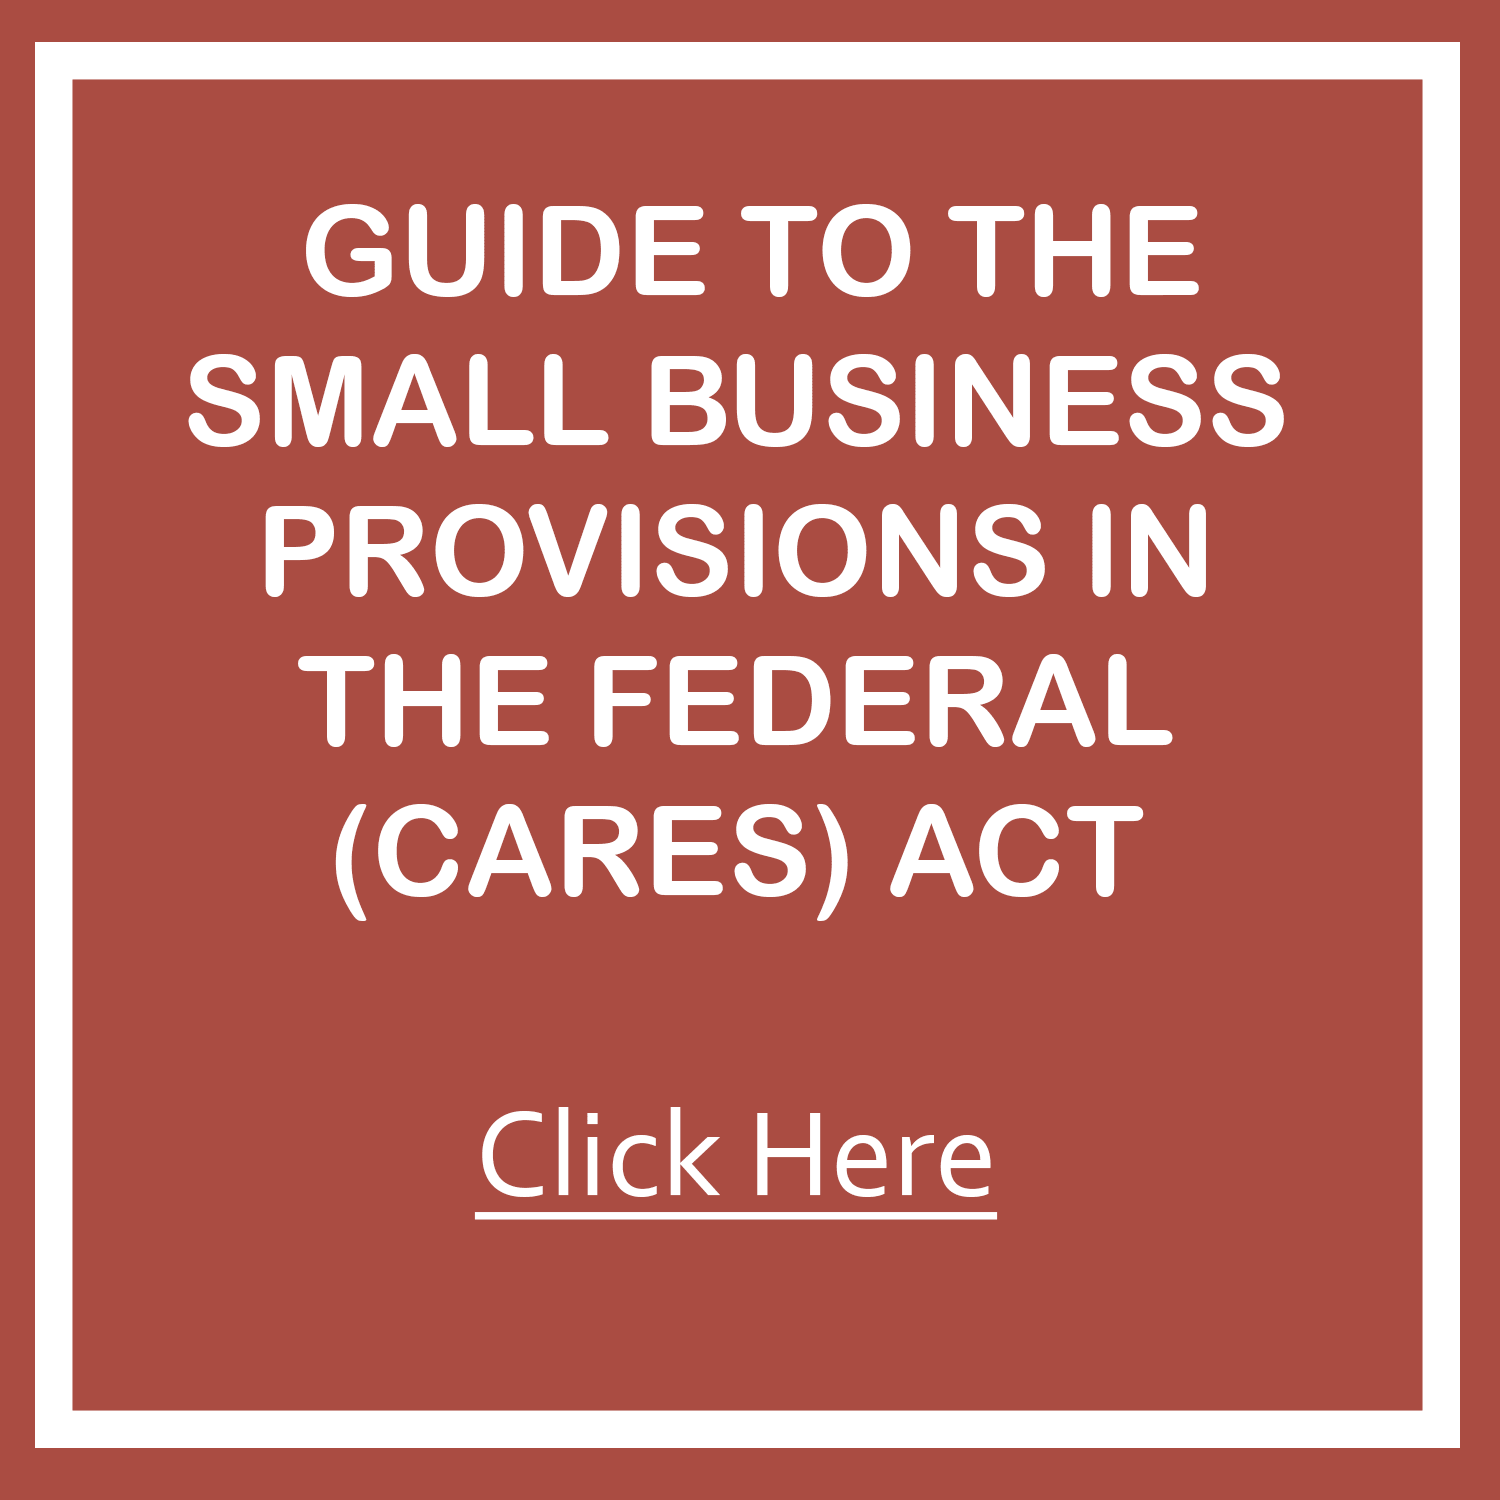 GUIDE FOR CARES ACT